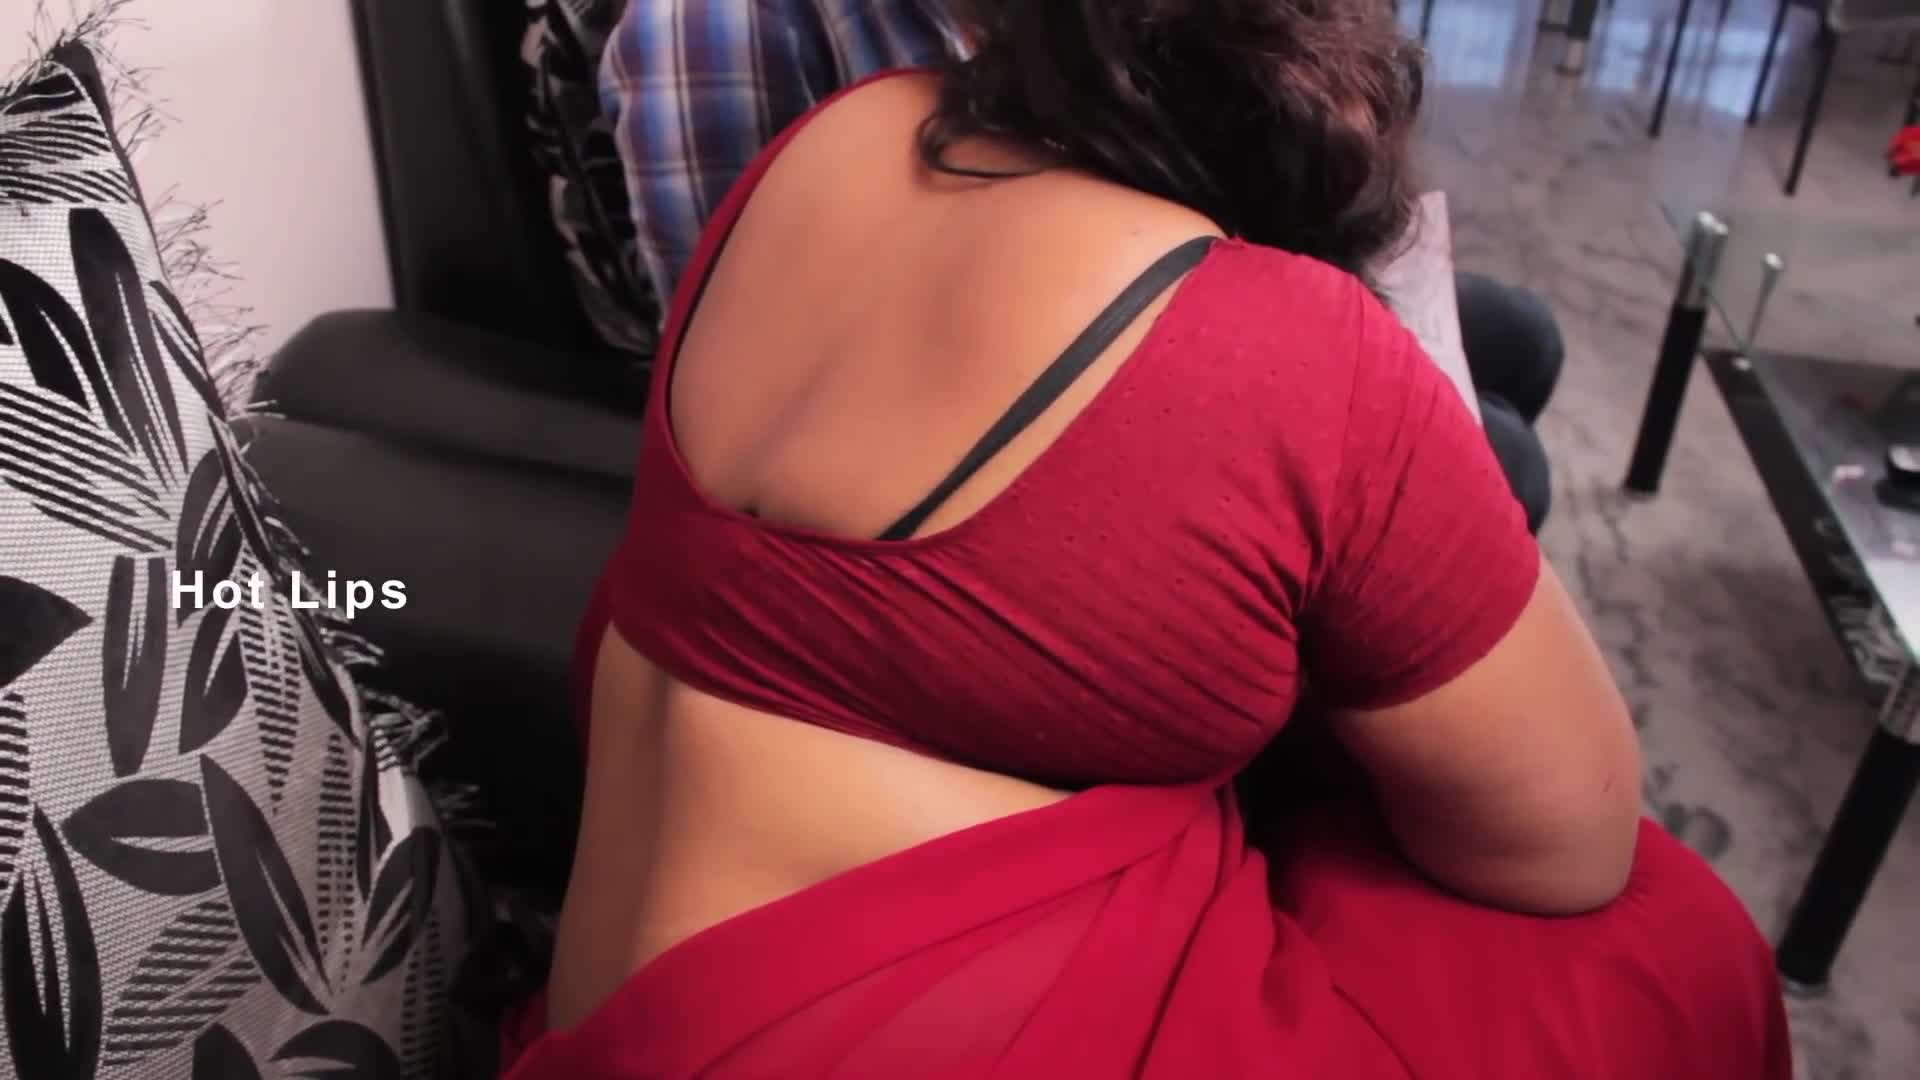 Hot aunty bra visible